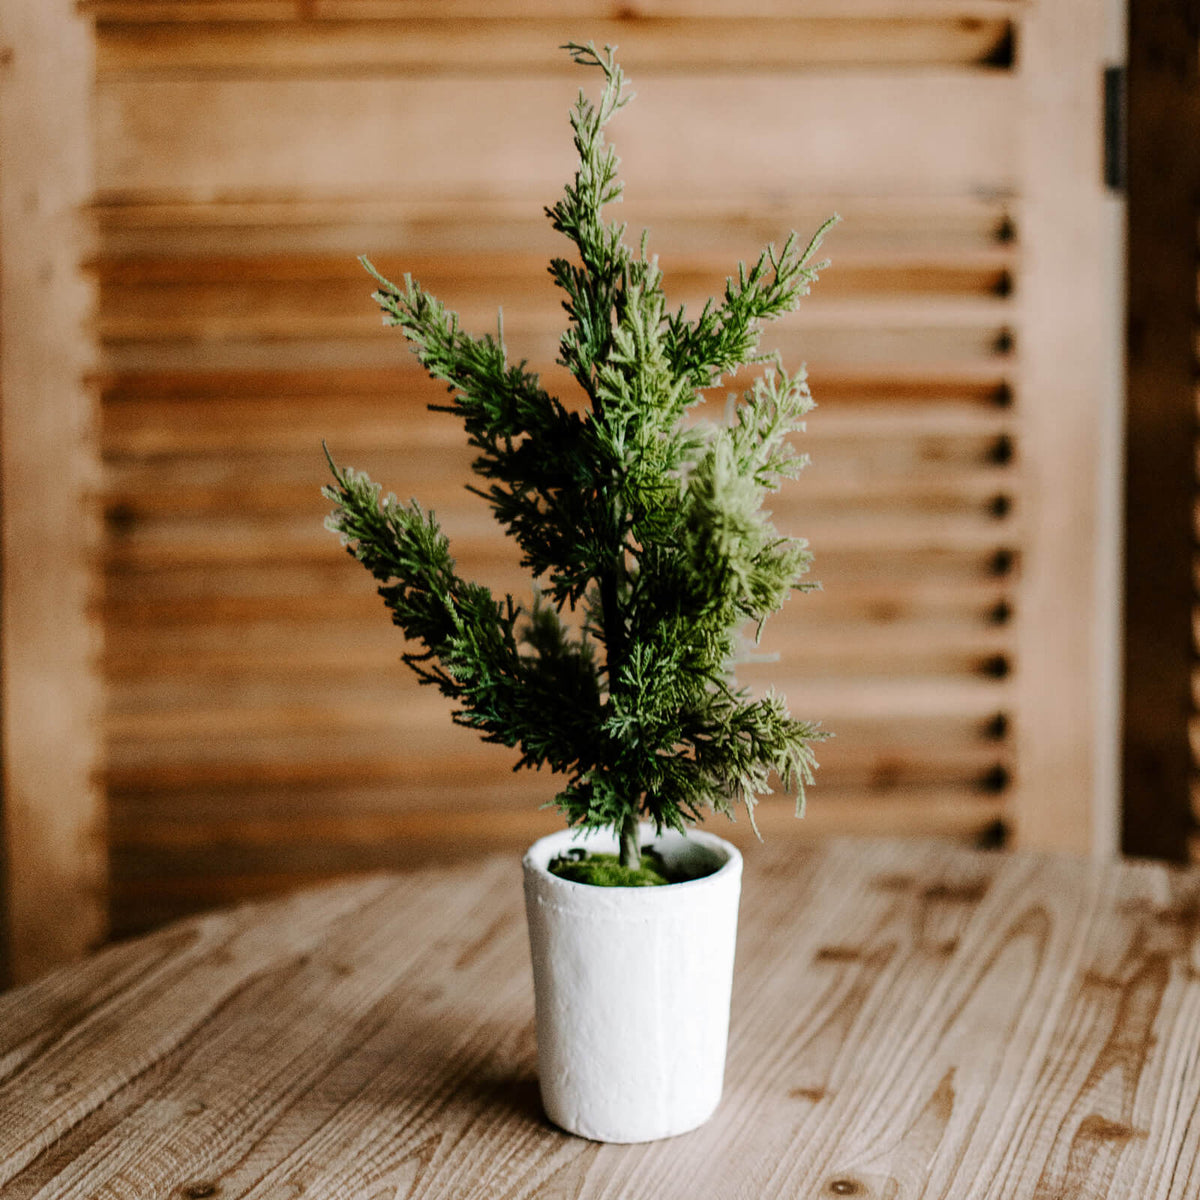 A realistic faux 20 inch tall pine tree inside a small, bright white pot for tabletop or shelf decorating during the holidays